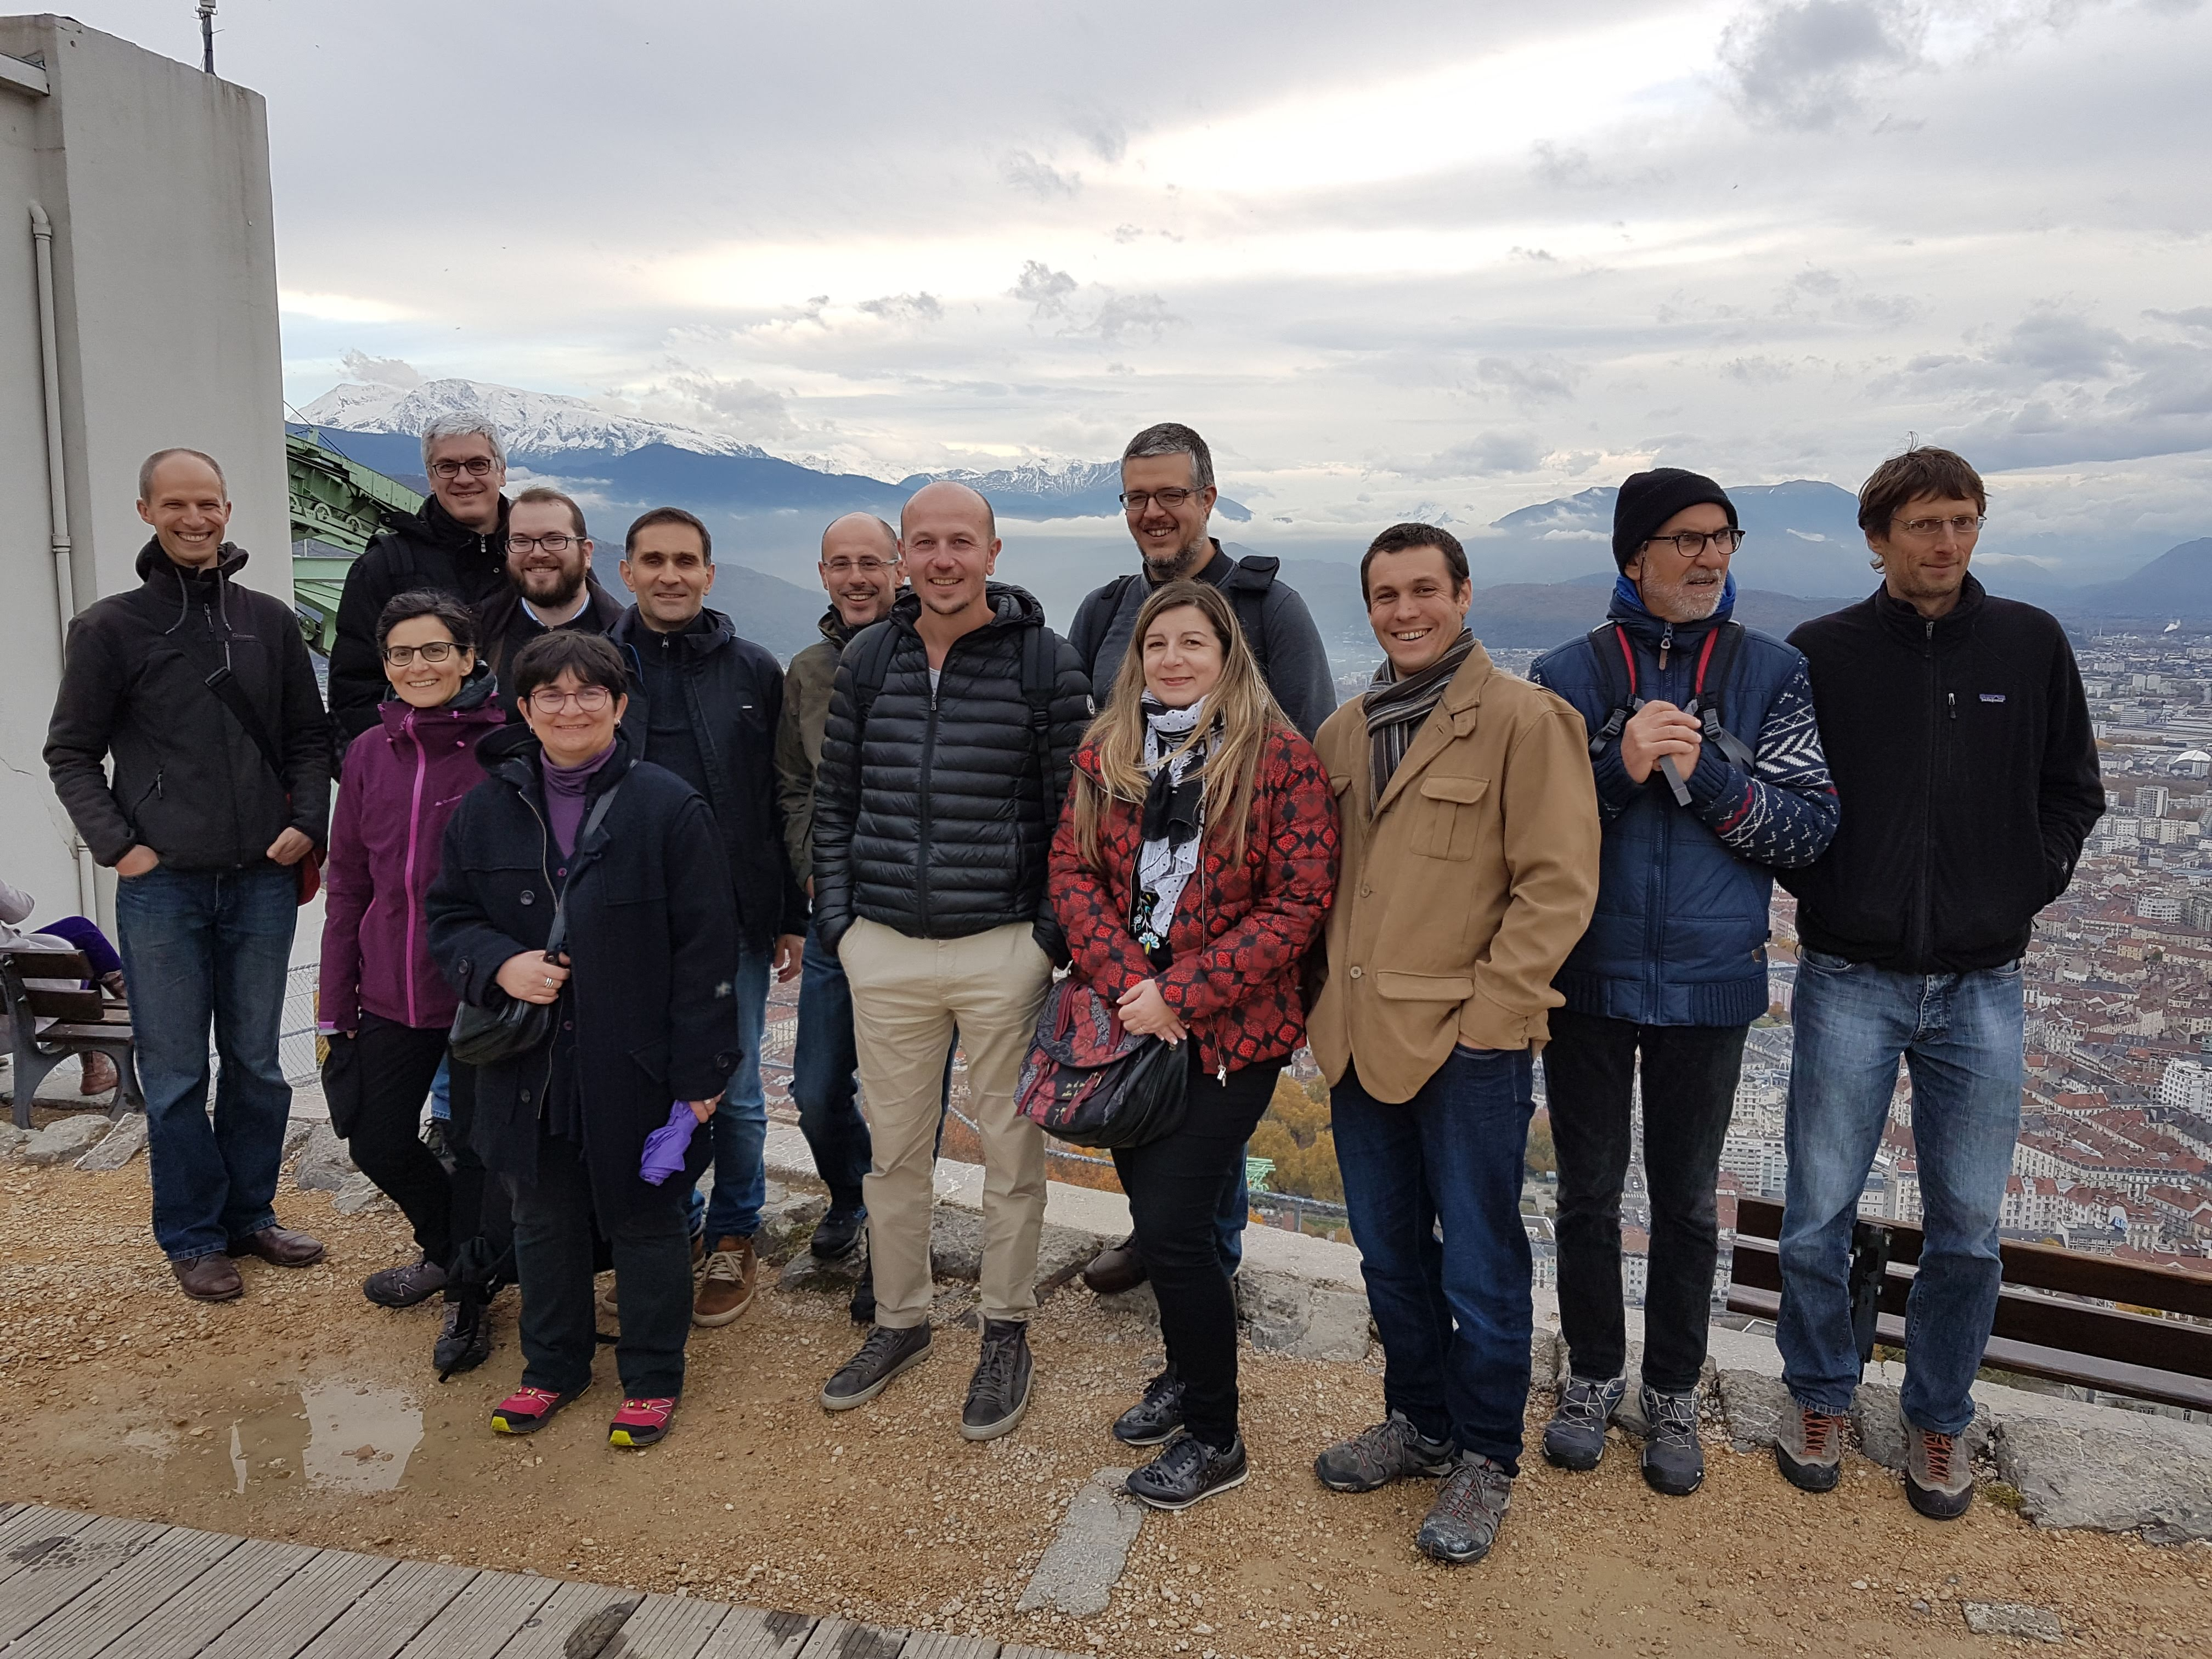 SED Team November 2018 at Bastille Grenoble